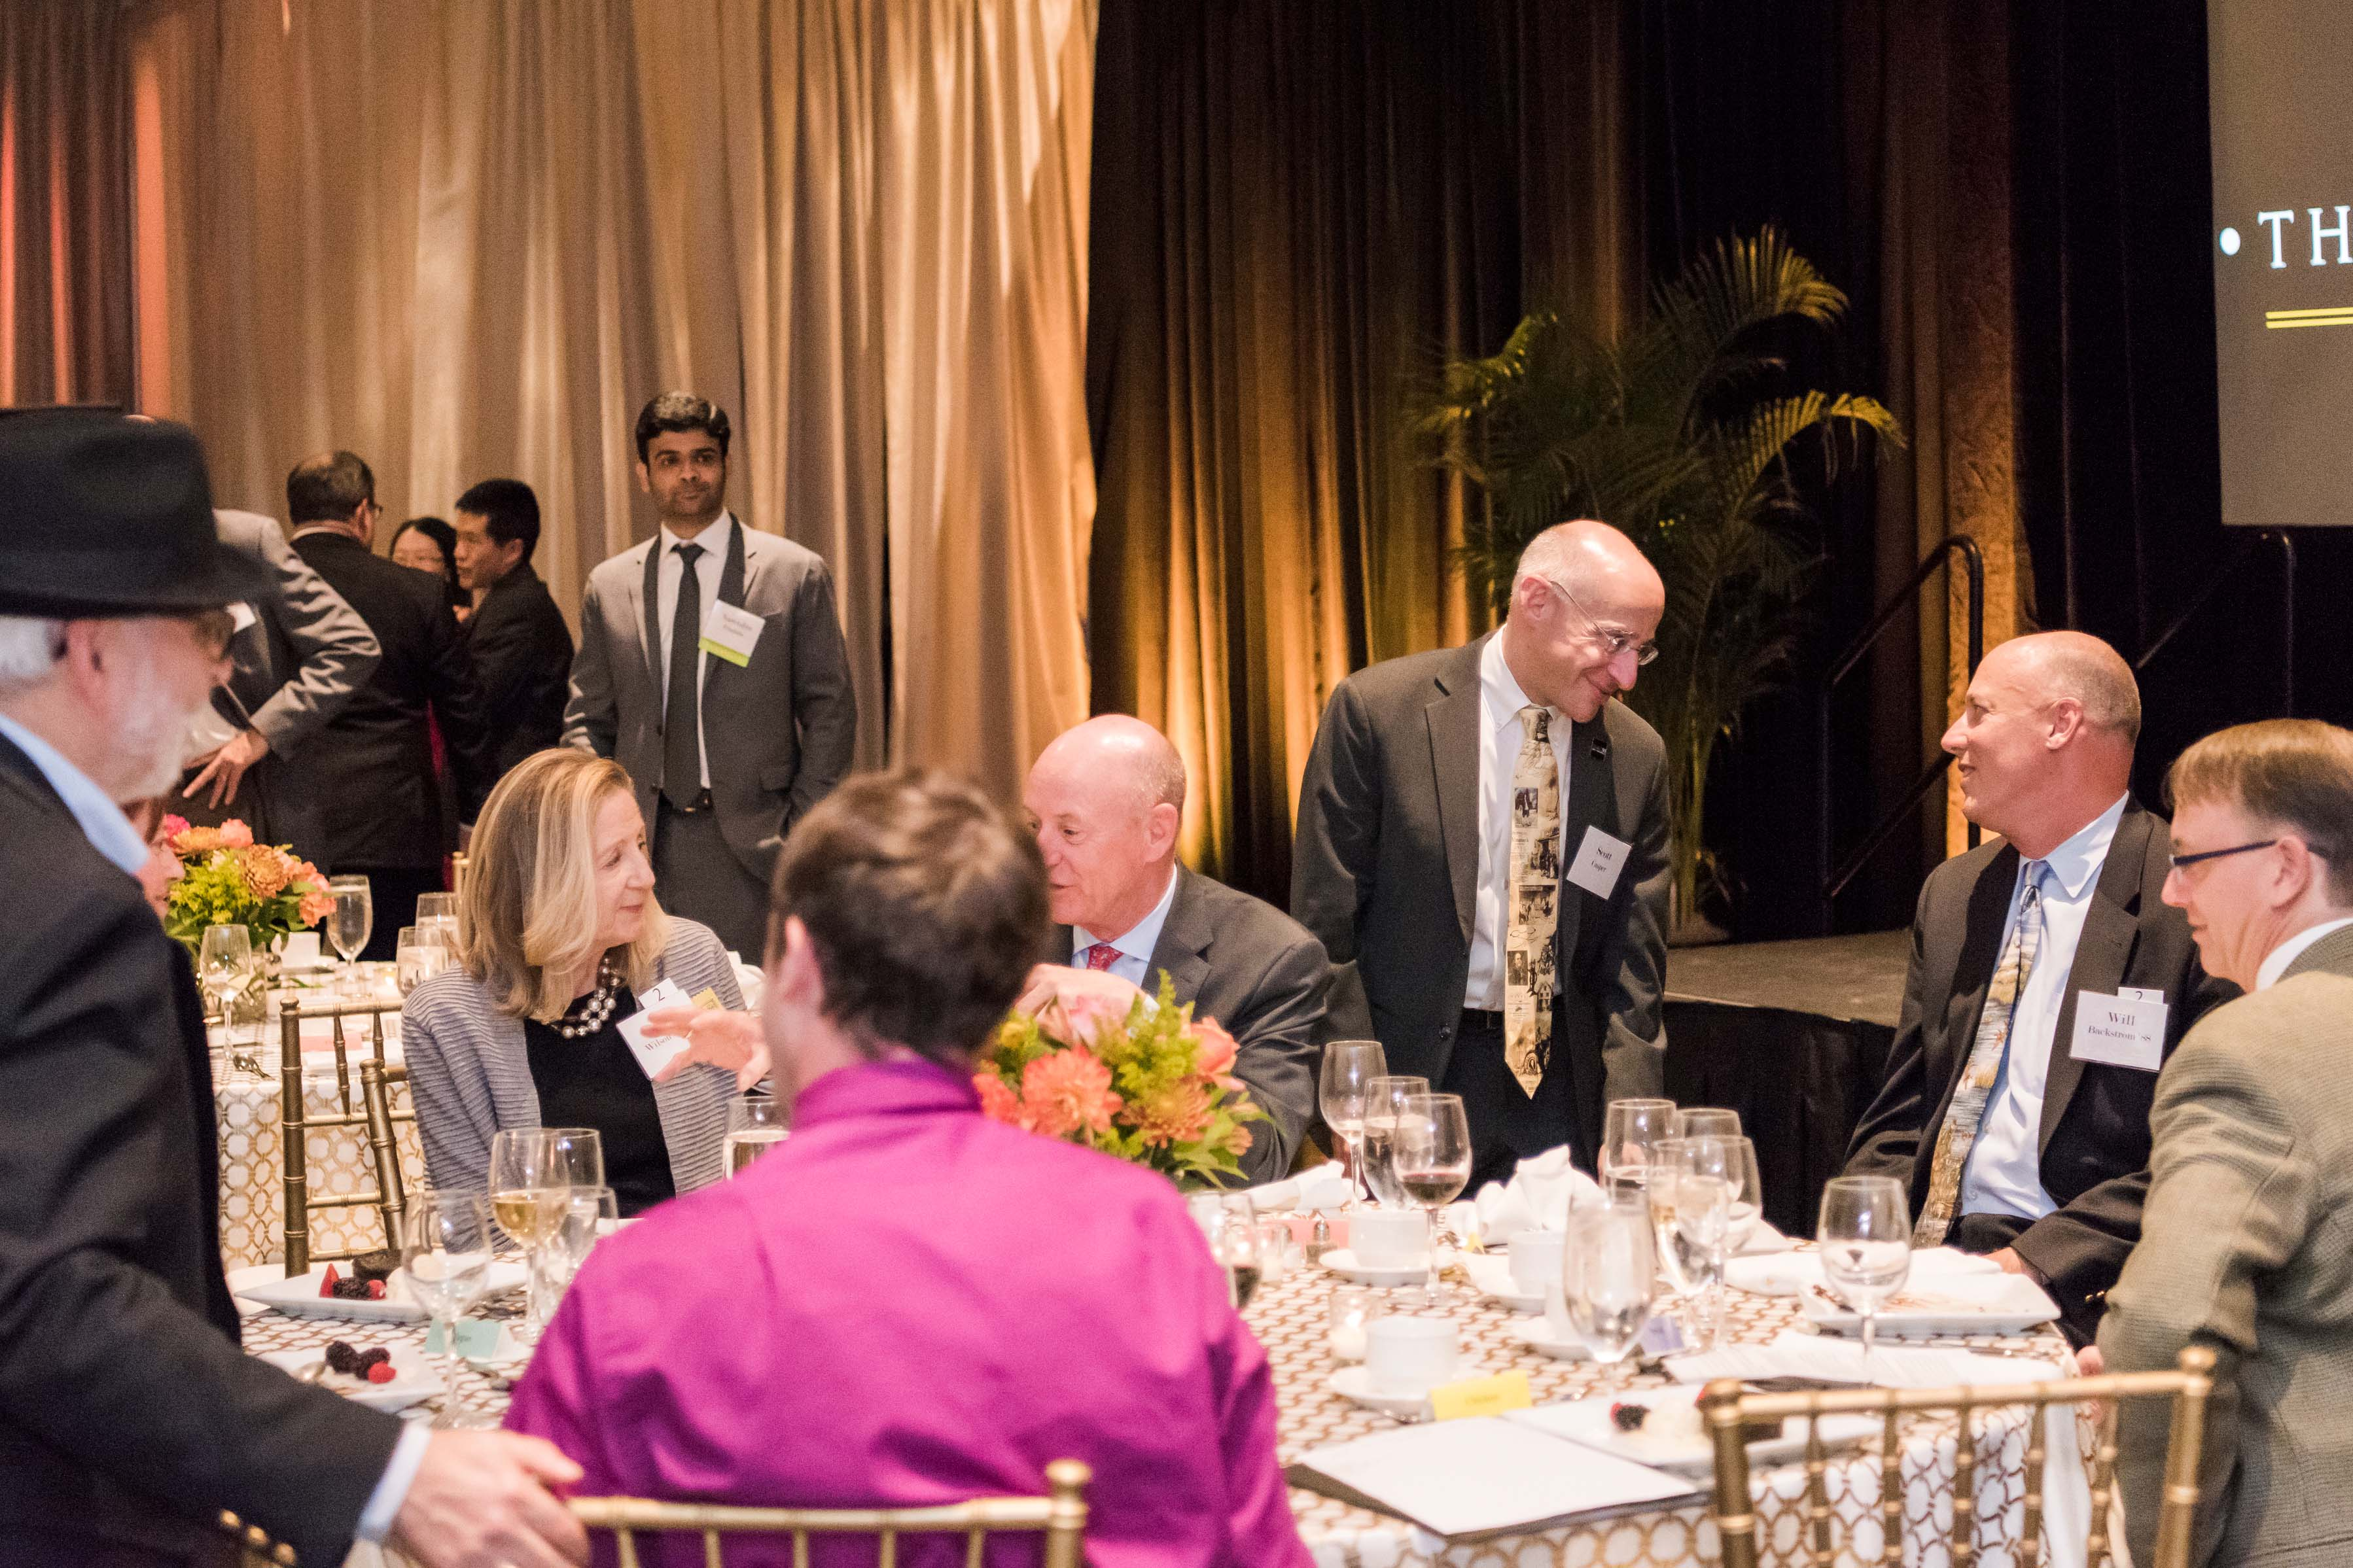 Guests talk around tables after dinner